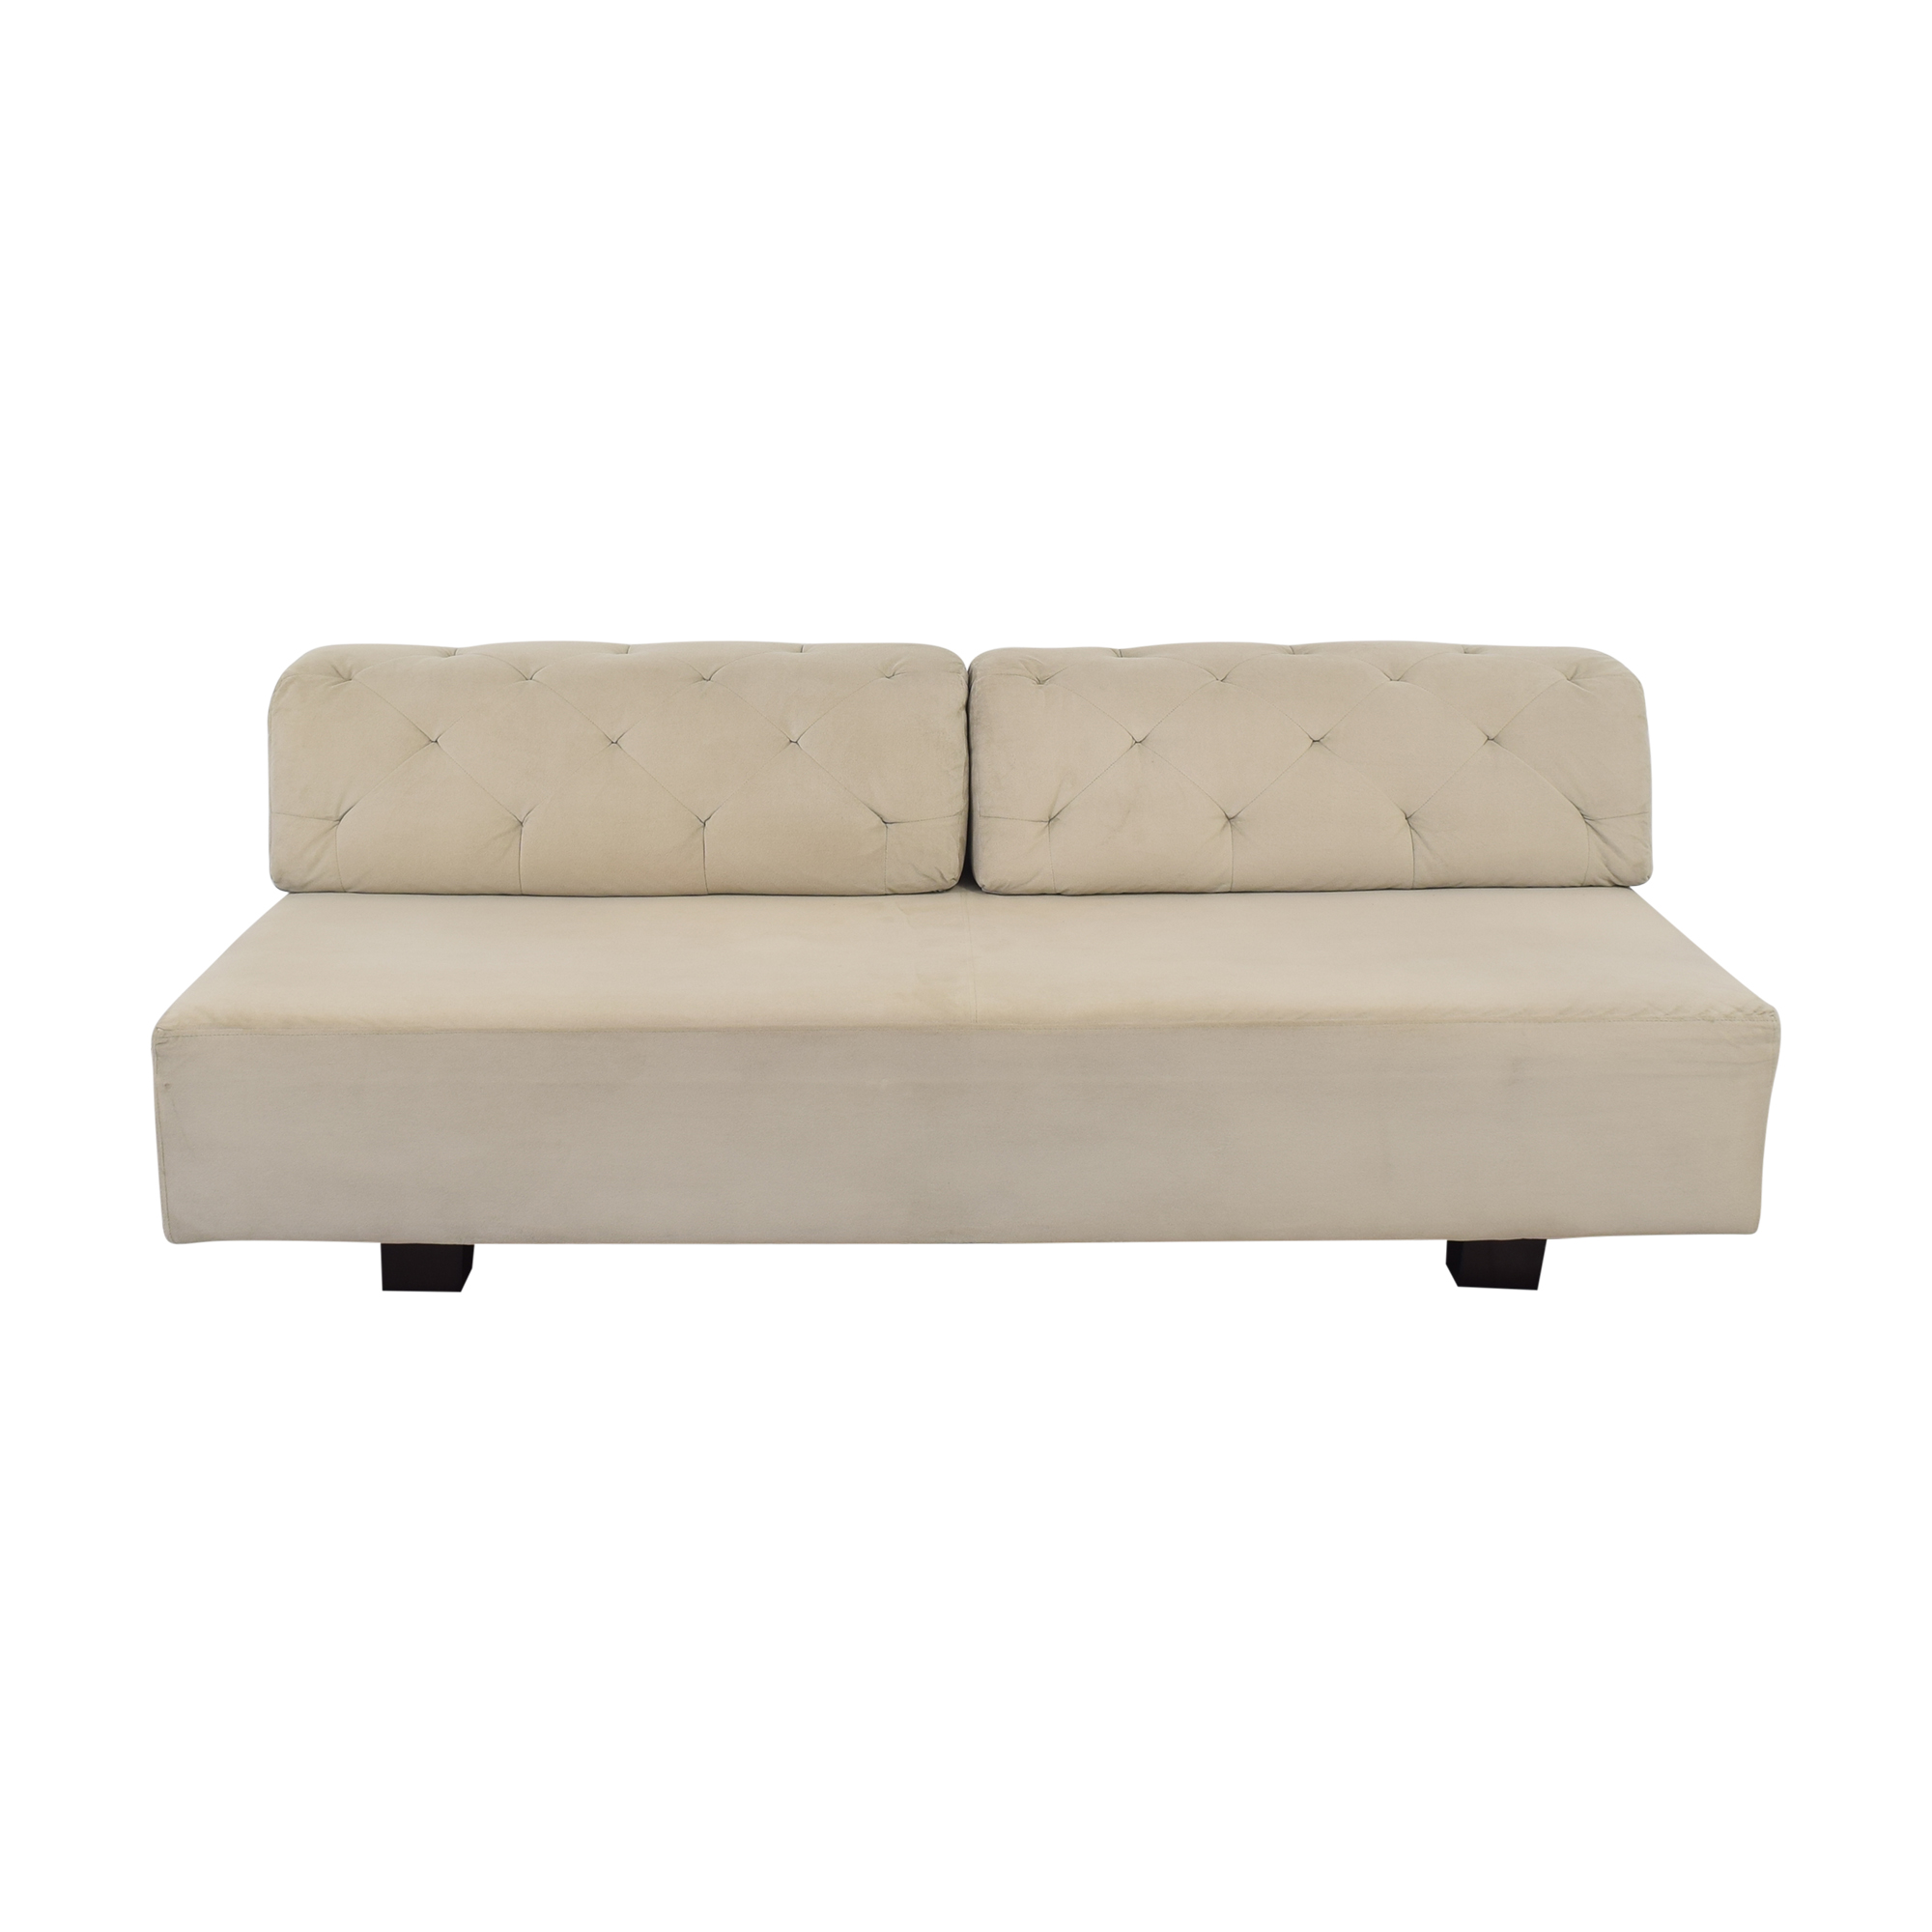 shop West Elm West Elm Tufted Tillary Sofa online